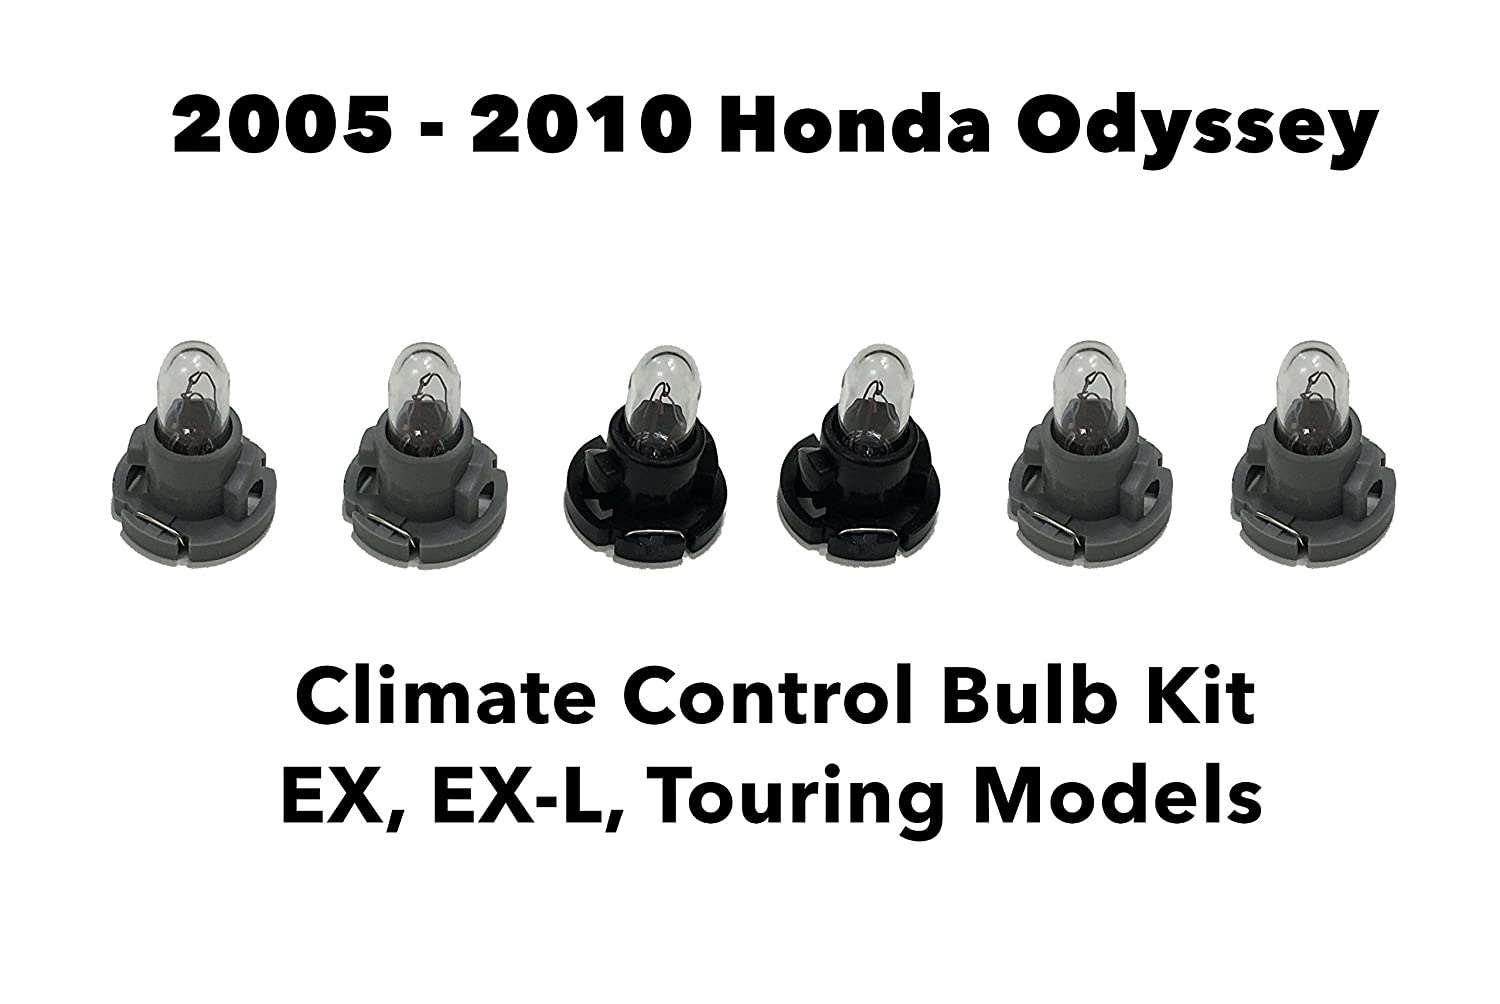 Genuine Oem Honda Odyssey Set Of 6 Bulbs Heater A C 20062007 Ridgeline Electrical Troubleshooting Manual Original Climate Control Light Bulb Kit Ex L Touring 2005 2010 Automotive